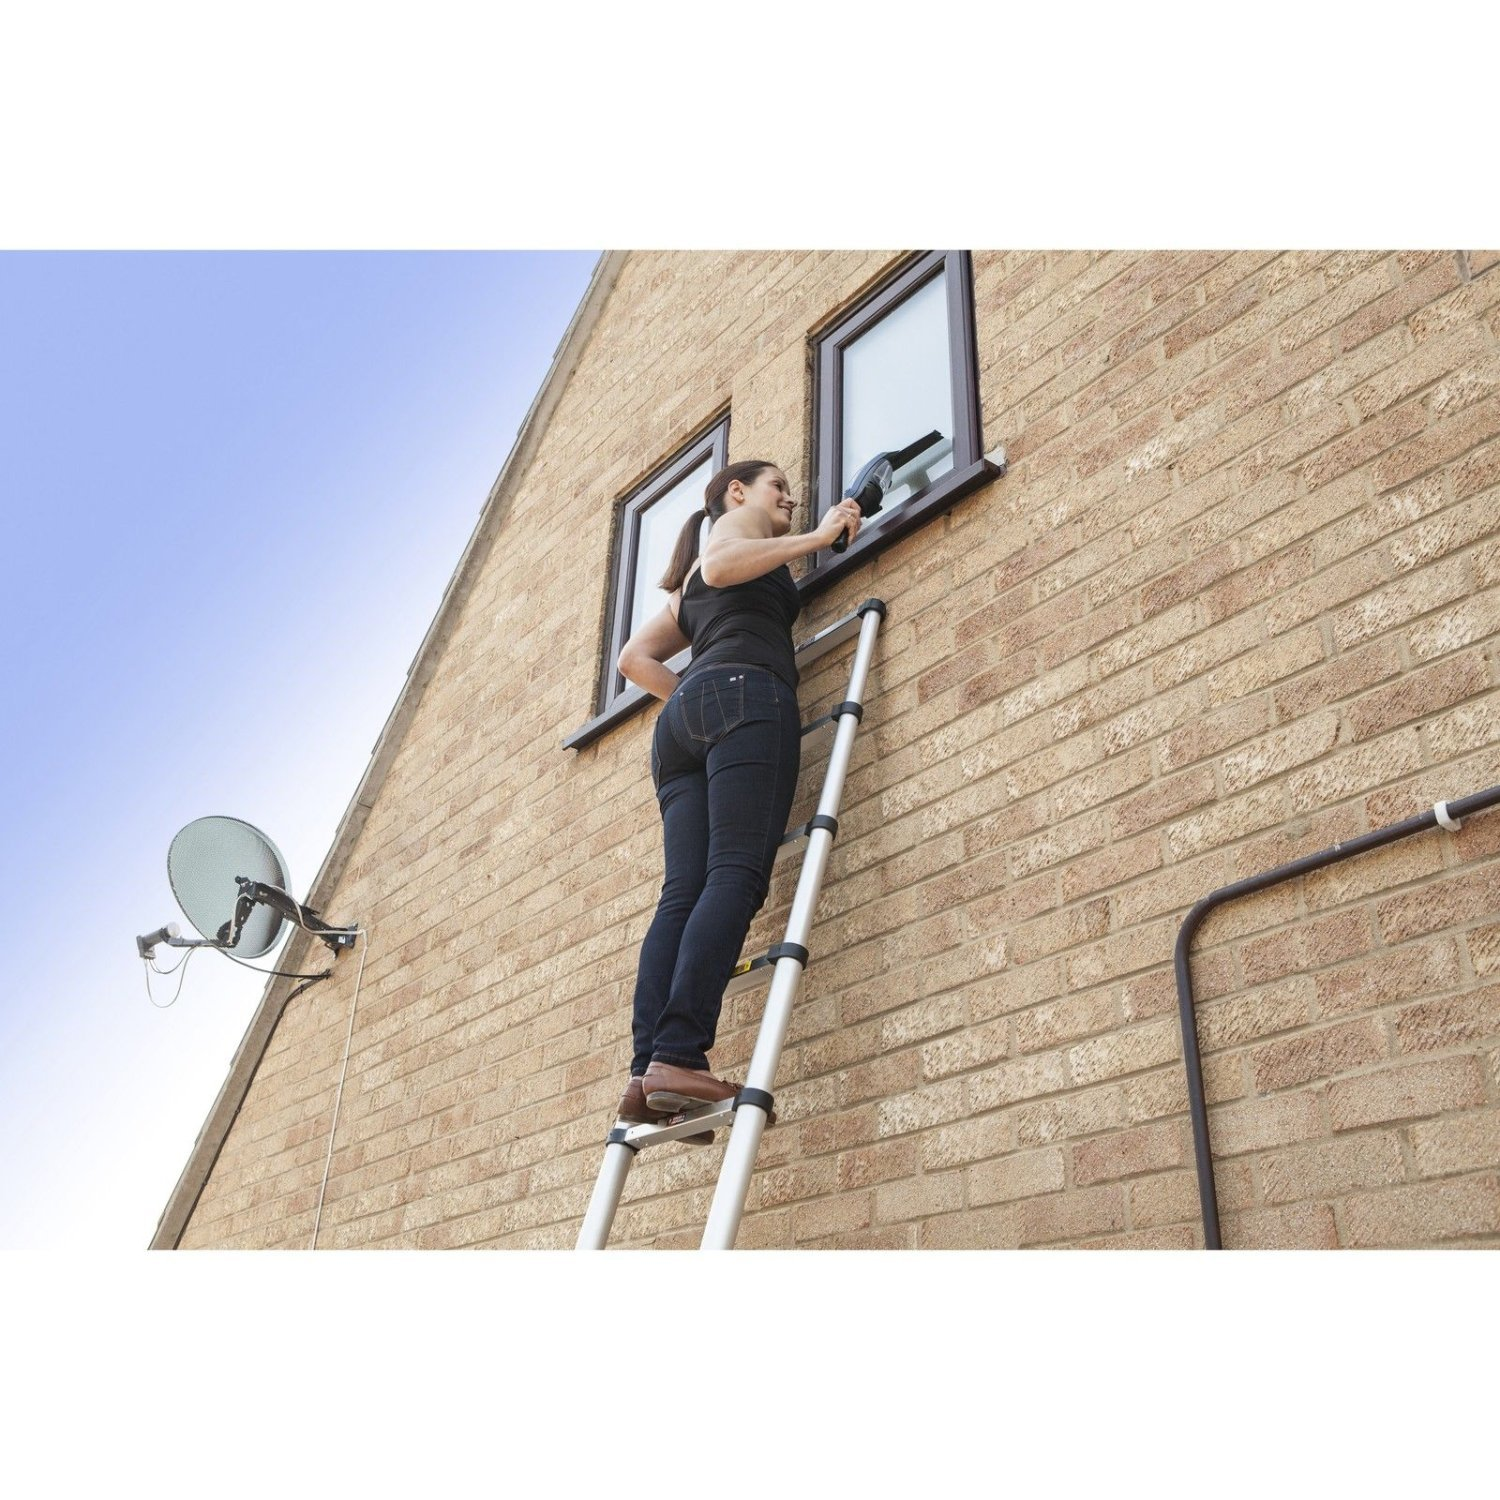 6ft Multi Purpose Step Ladders : M multi purpose extendable aluminium telescopic ladder